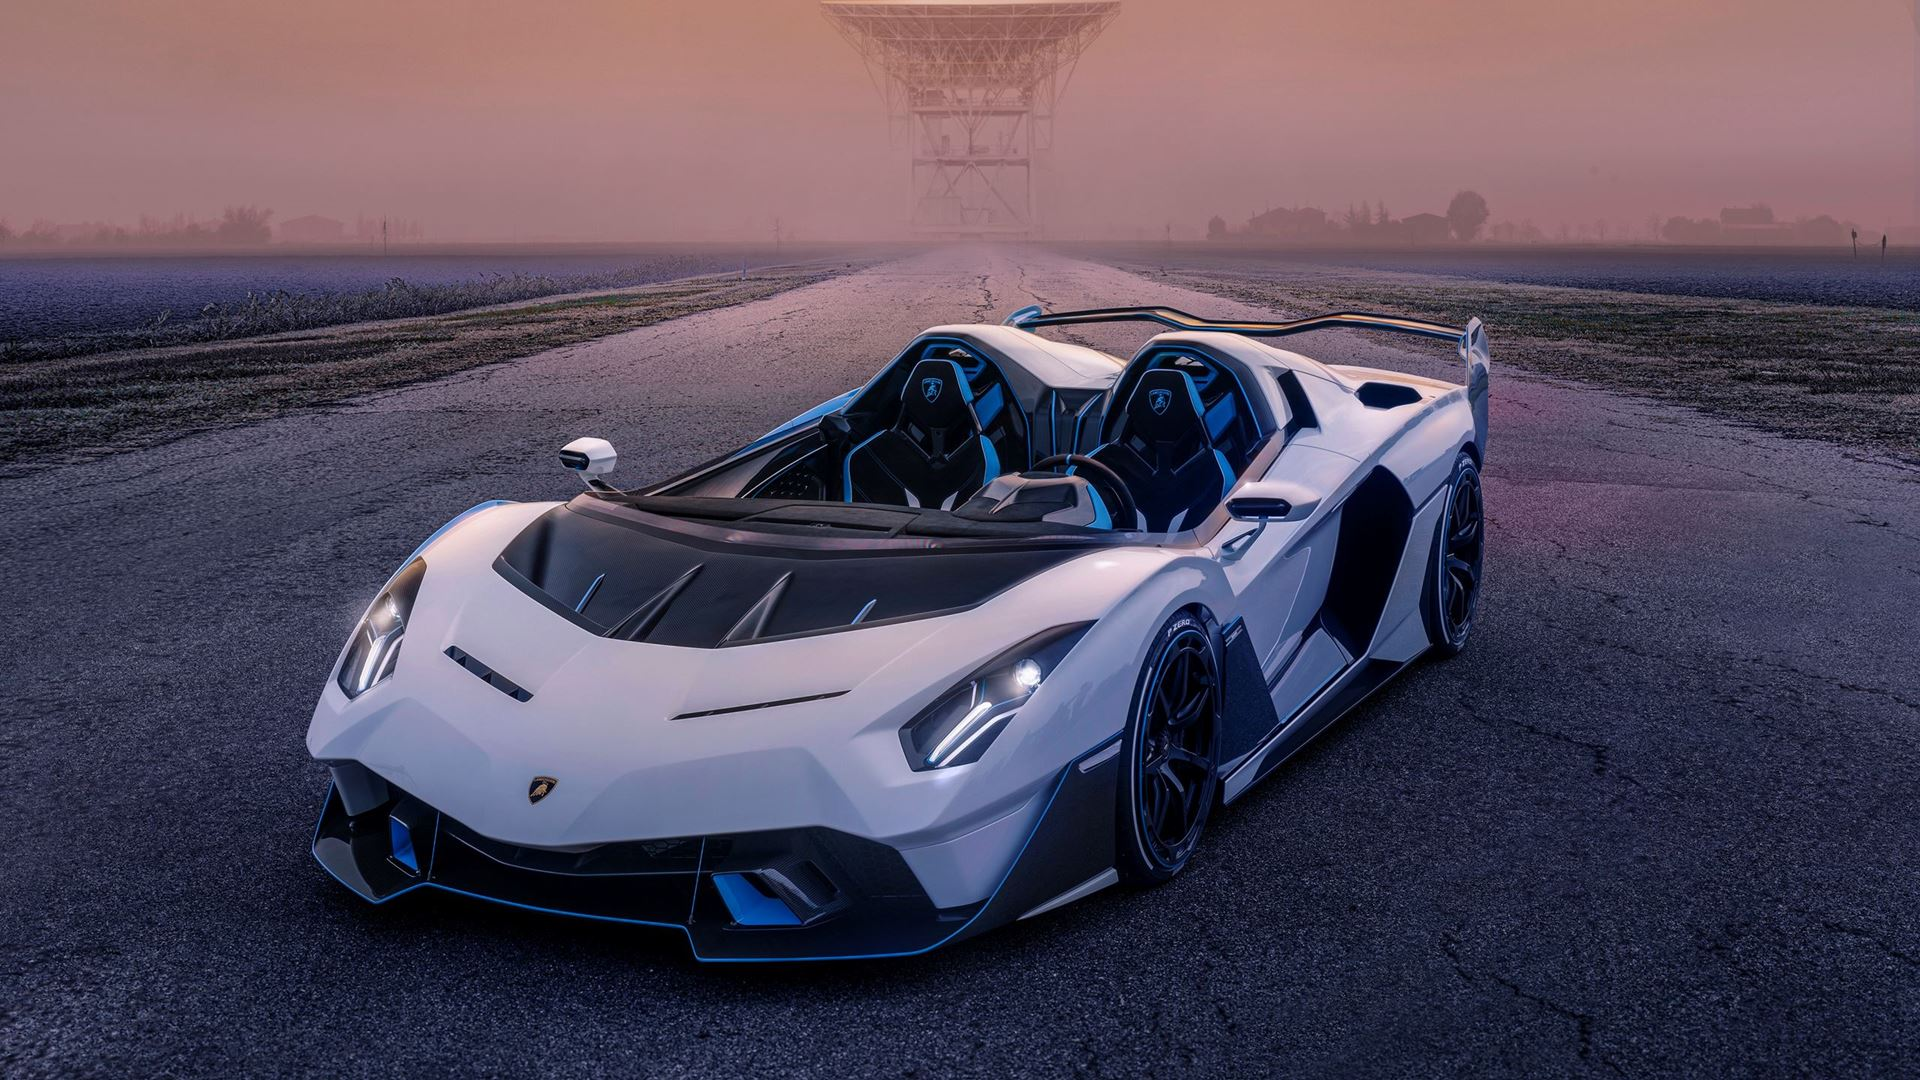 Lamborghini SC20: the unique open-top track car by Squadra Corse - Image 5